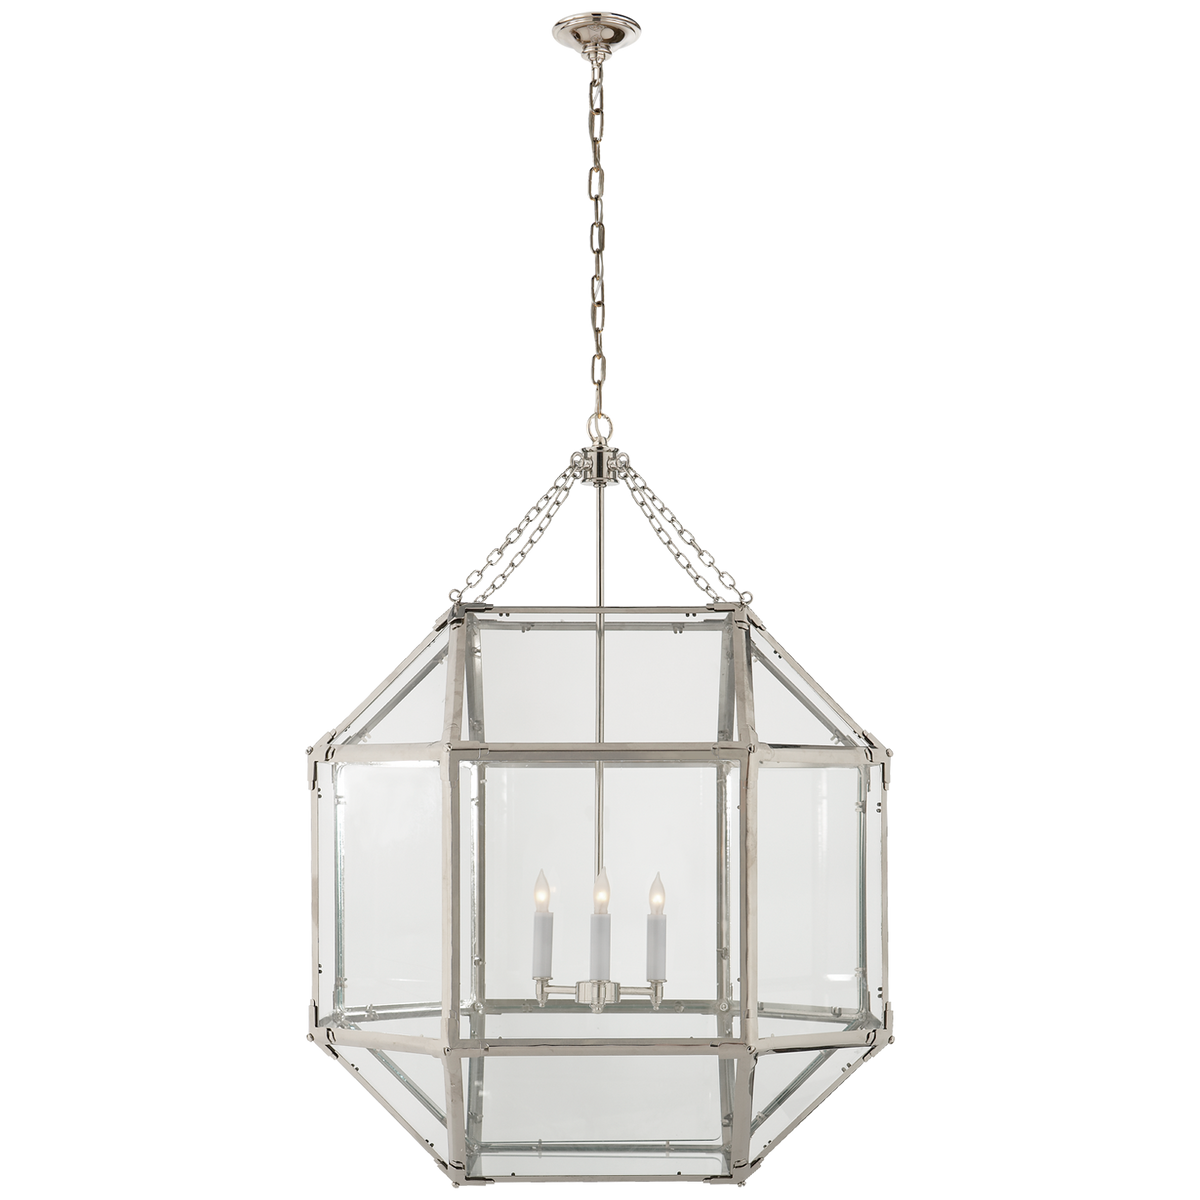 Morris Large Lantern in Polished Nickel with Clear Glass